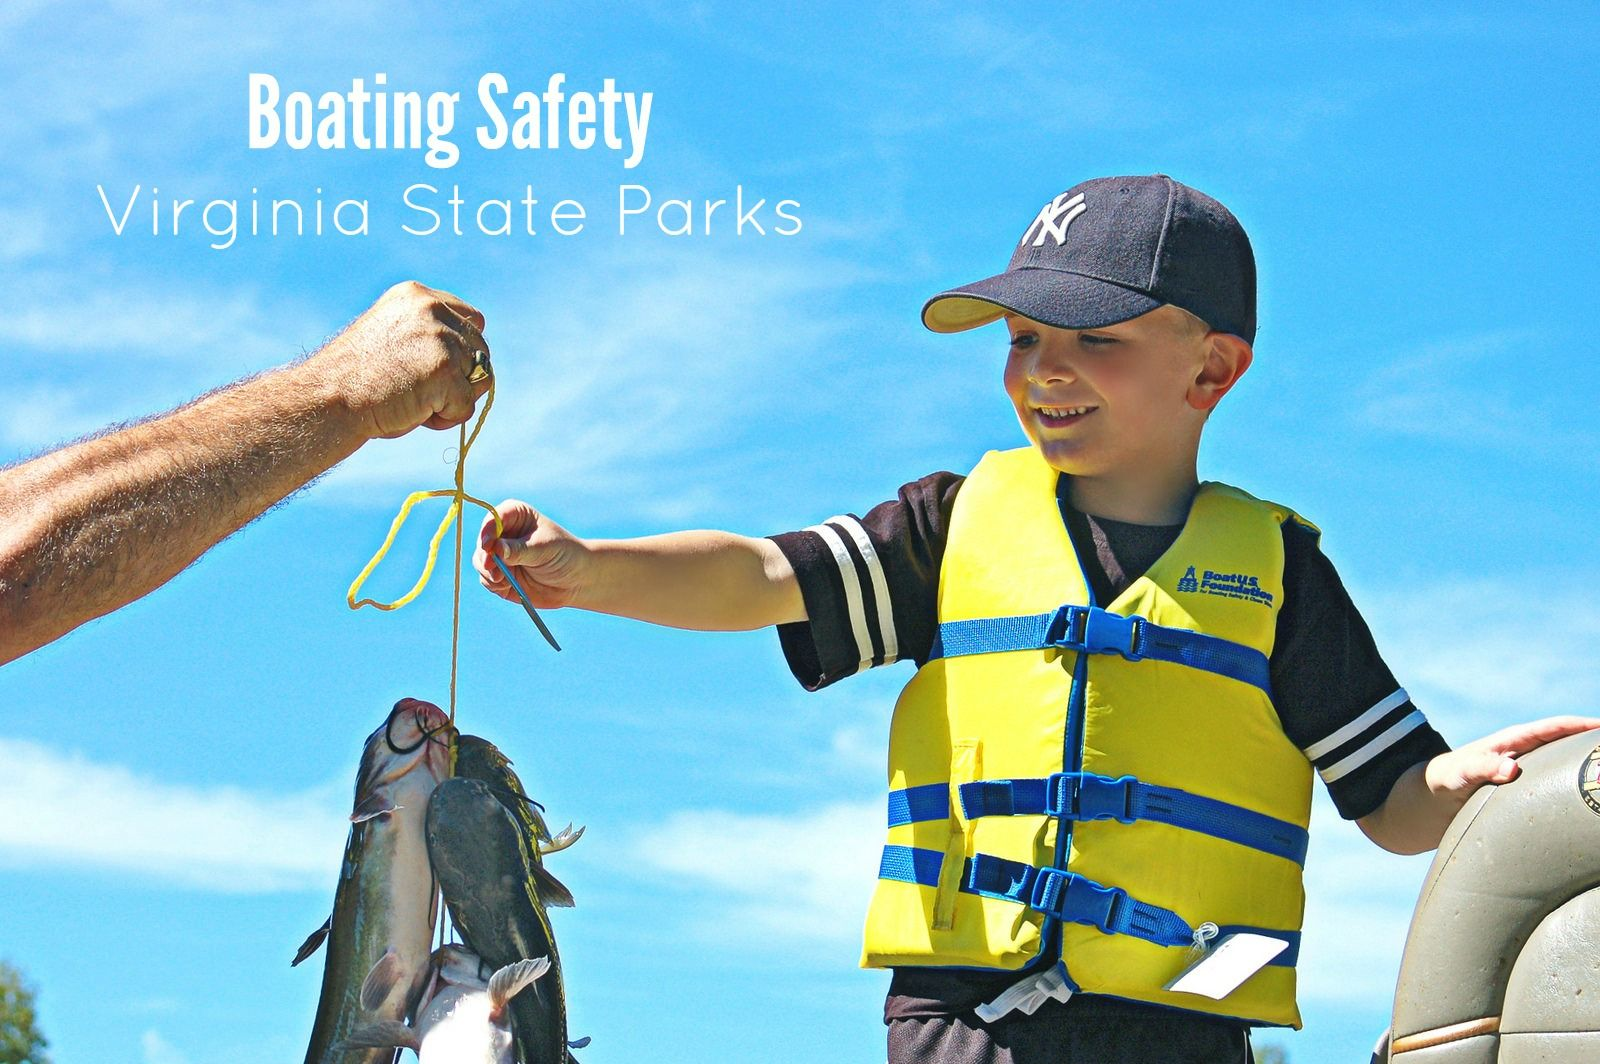 Life jackets save lives. If you are out on the water make